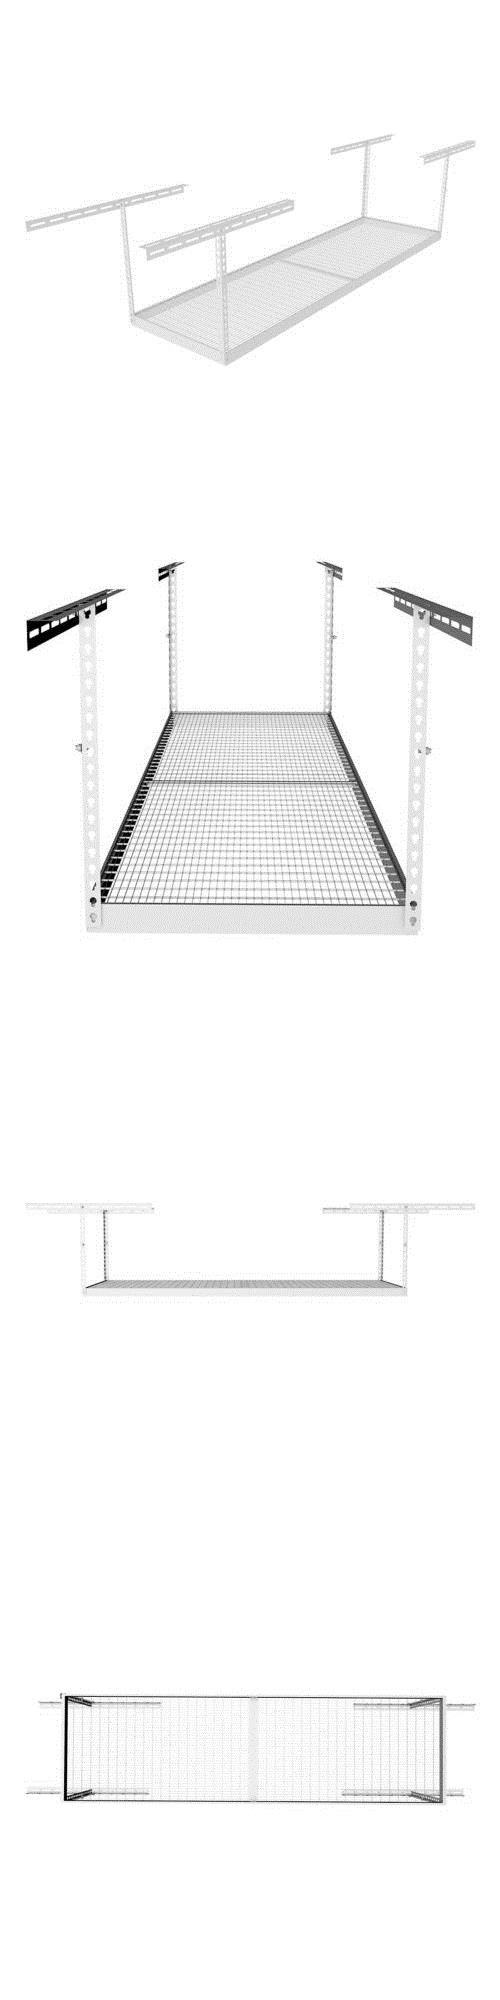 Other Home Organization 20621: Monsterrax 3 X8 Overhead Storage Rack 18 To 33 Drop - White -> BUY IT NOW ONLY: $139.95 on eBay!